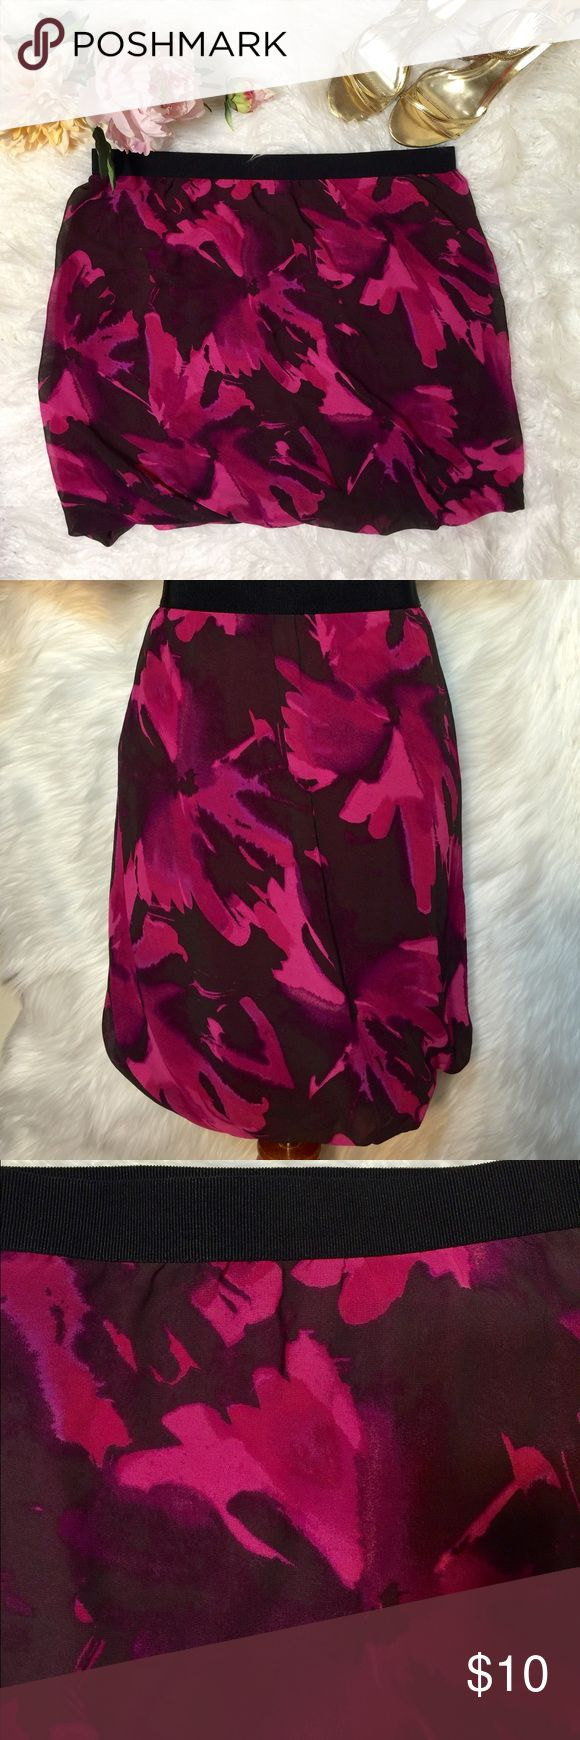 "4th of July SaleLoft Splash Floral Skirt S32-Beautiful color Splash that give you soft romantic appeal. Elastic waist- 100% Polyester, lining: 94"" Rayong & 6% Spandex. Flat across @ waist: 17"" & lenght: 18"". NWOT LOFT Skirts Mini"